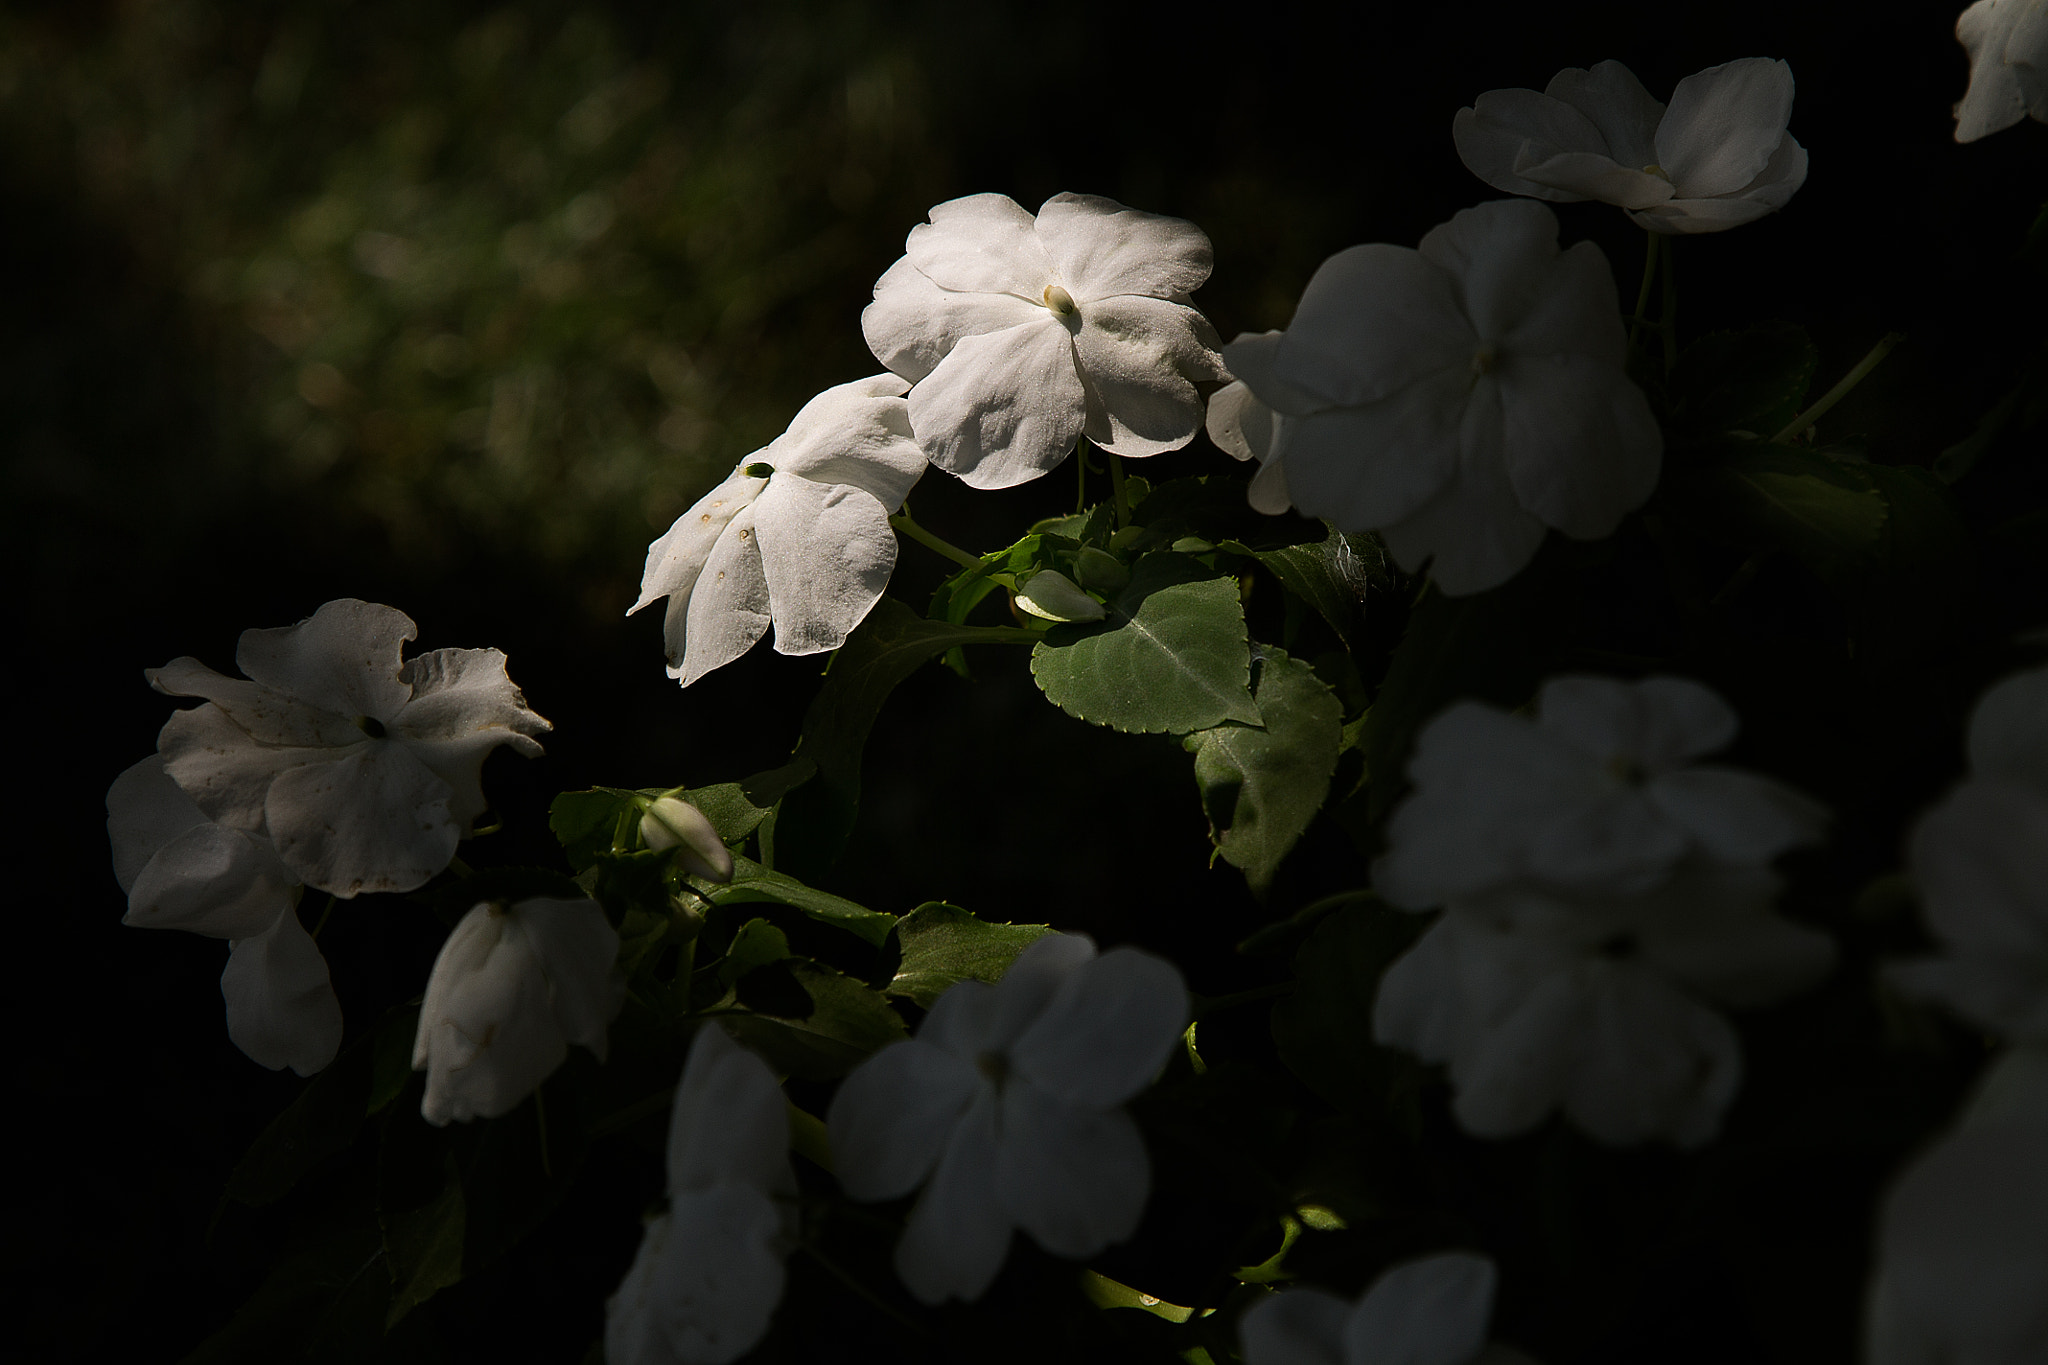 Photograph flowers and shadows by Scott Brodersen on 500px